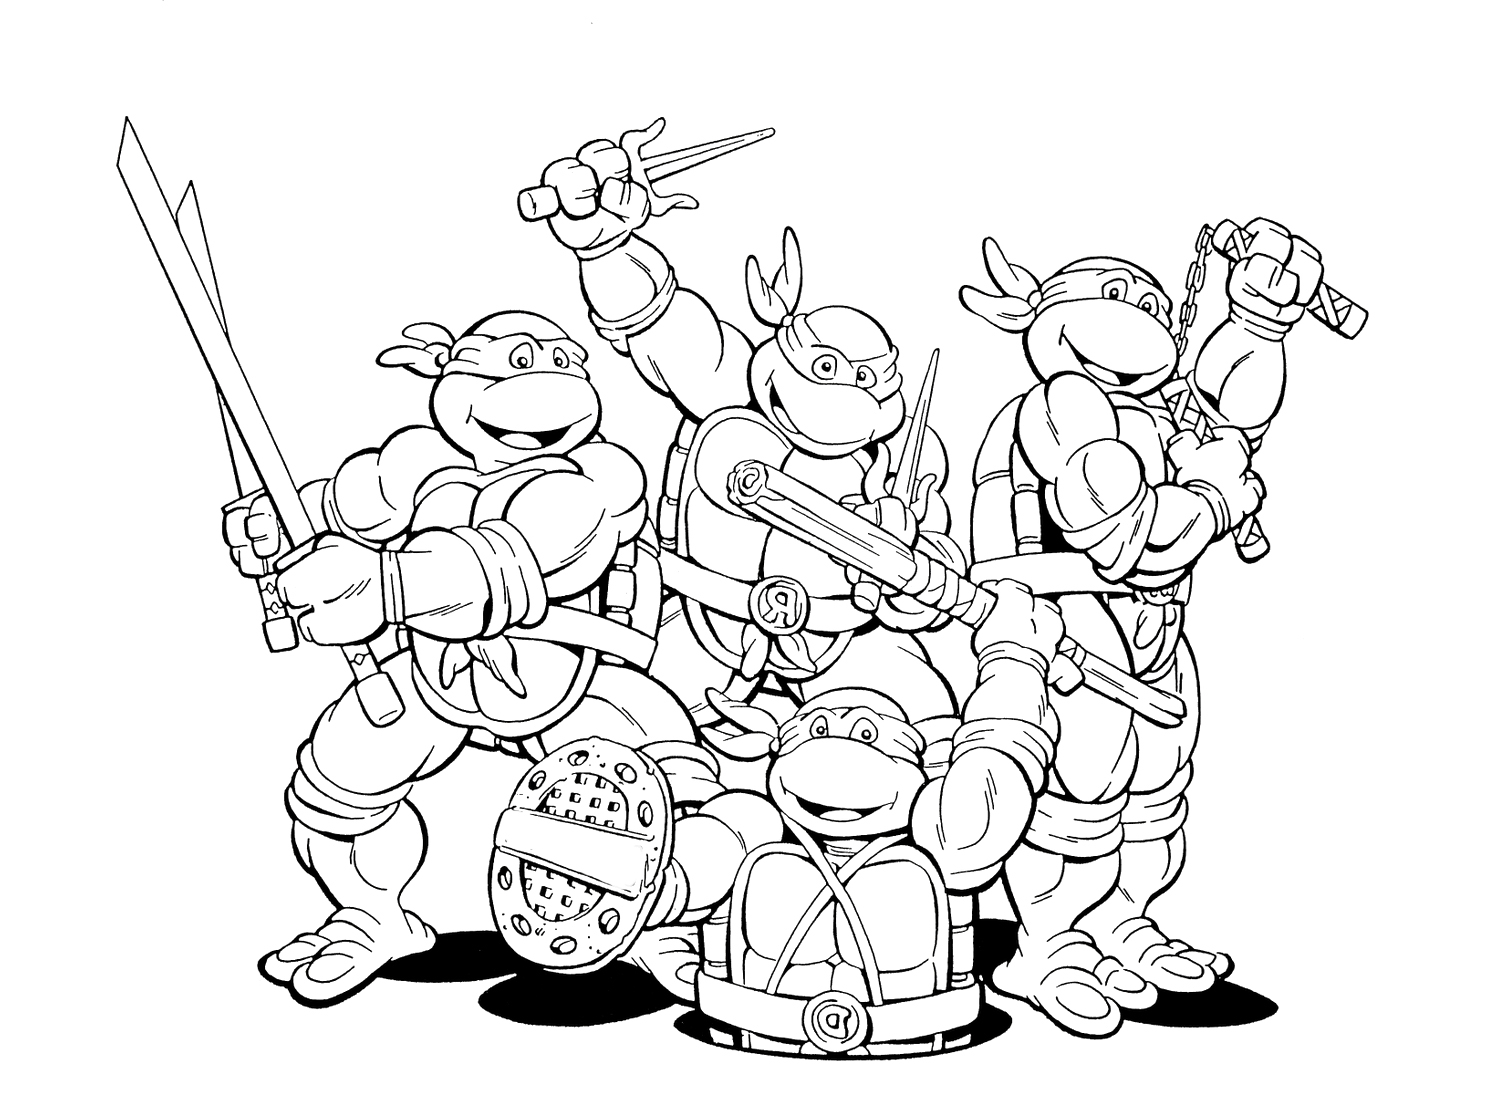 1487x1111 Teenage Mutant Ninja Turtle Coloring Pages